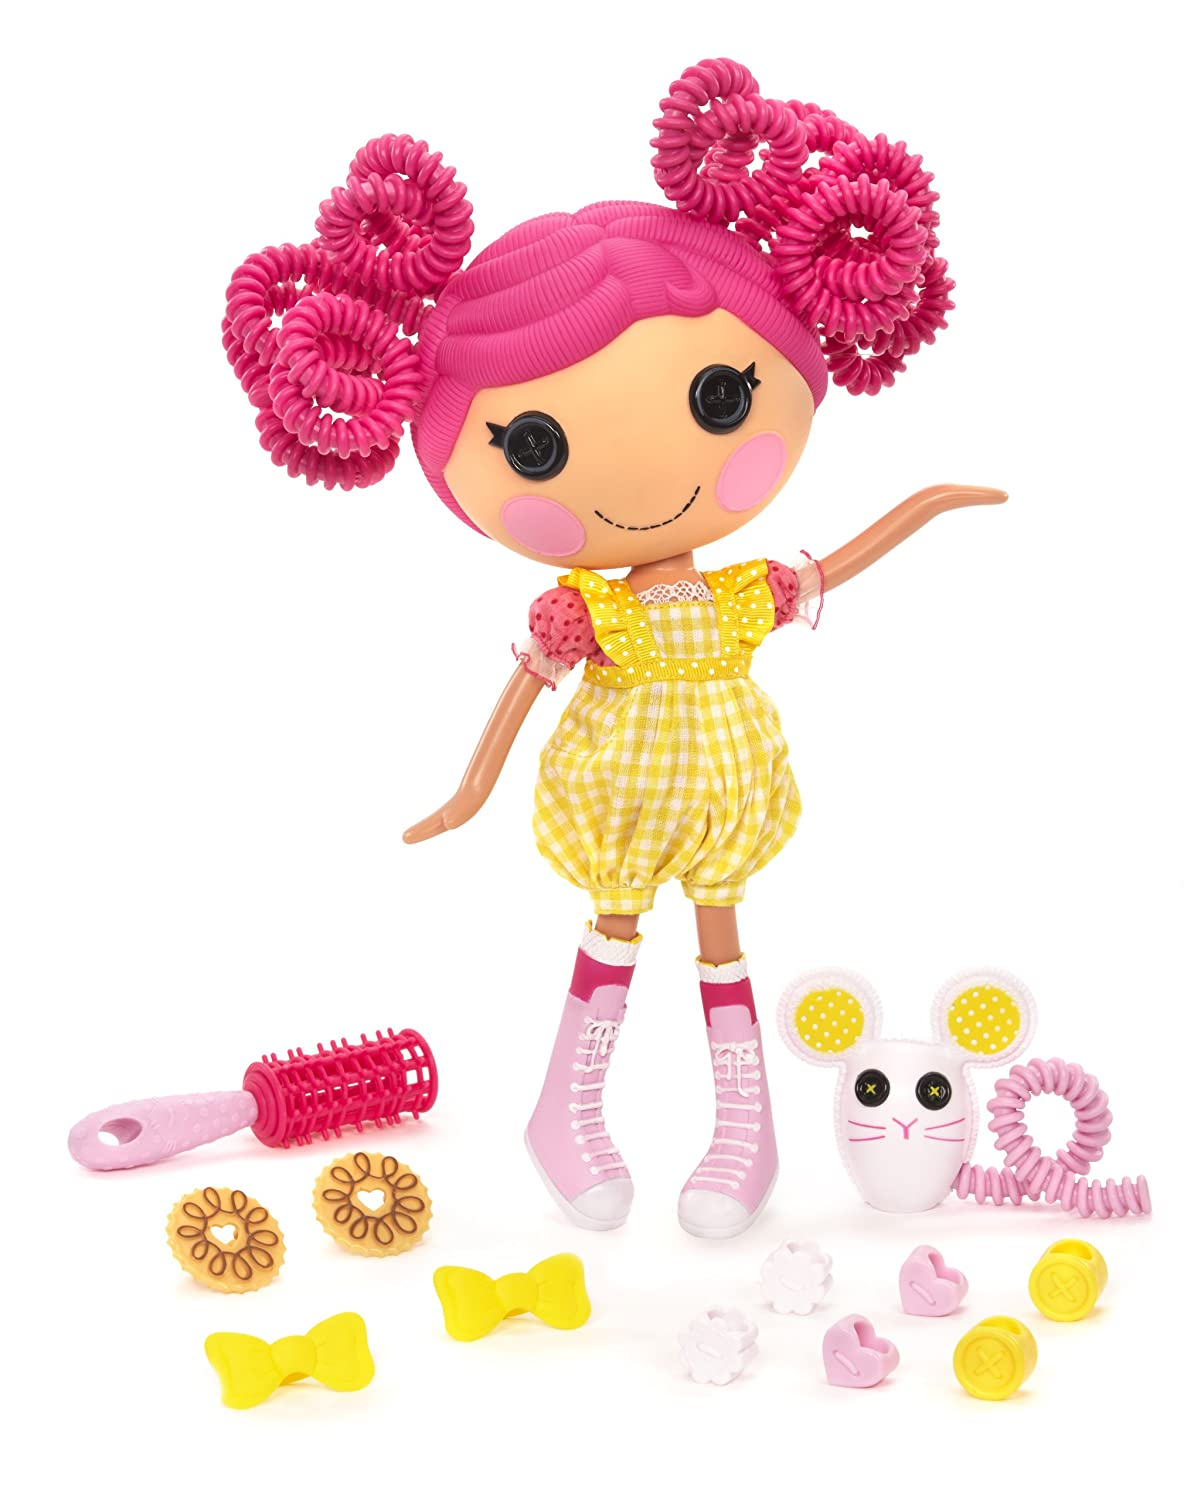 Lalaloopsy Crumbs Sugar Cookie Target Doll Crumbs Sugar Cookie